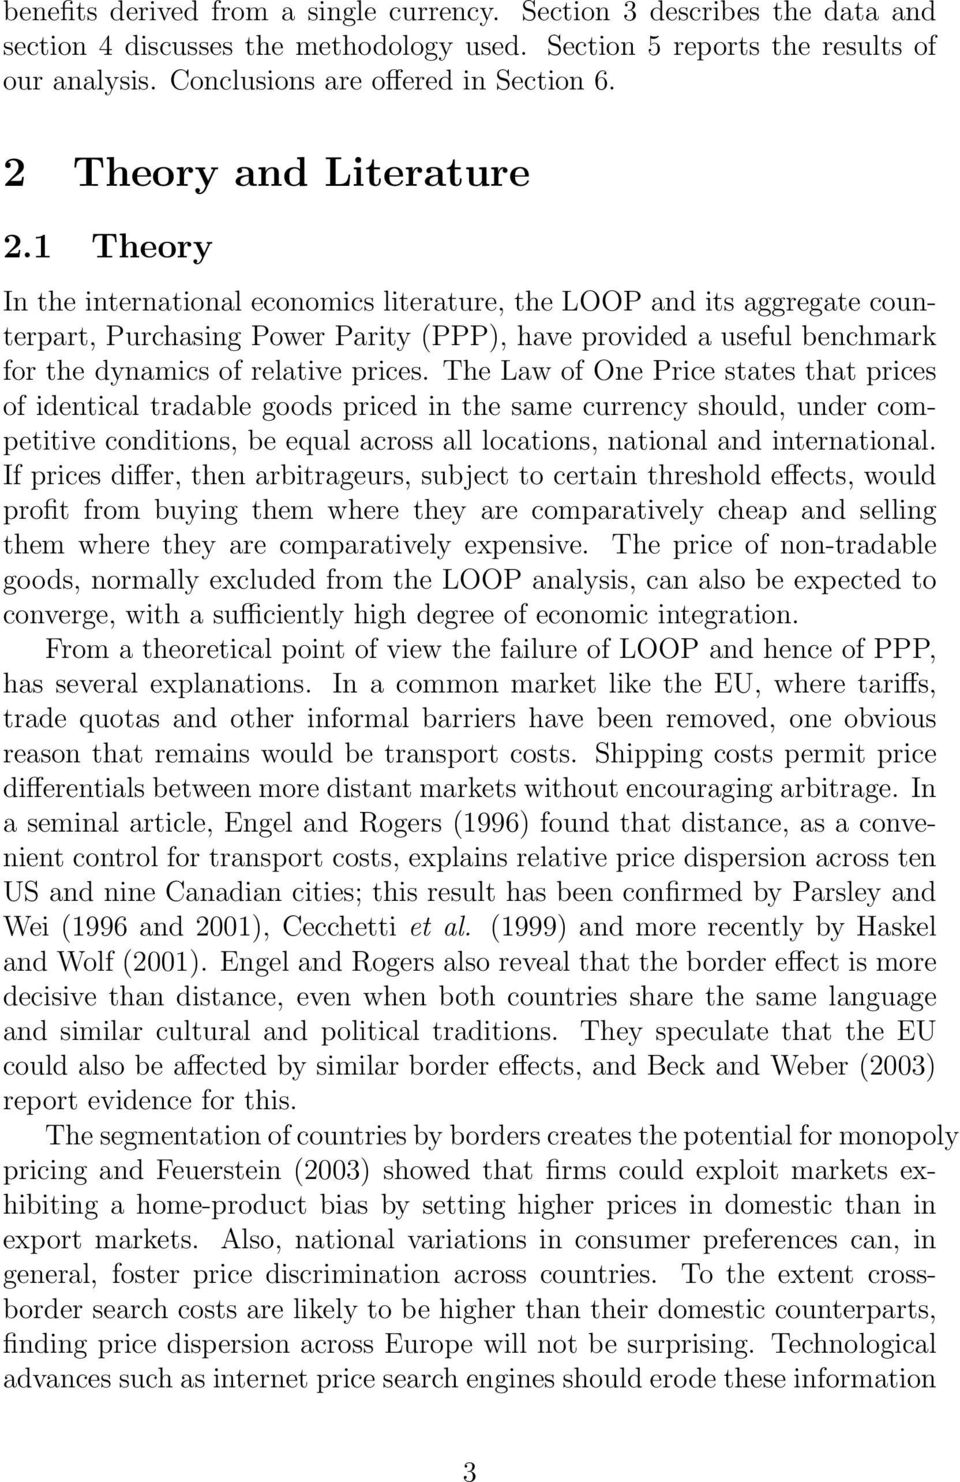 1 Theory In the international economics literature, the LOOP and its aggregate counterpart, Purchasing Power Parity (PPP), have provided a useful benchmark for the dynamics of relative prices.